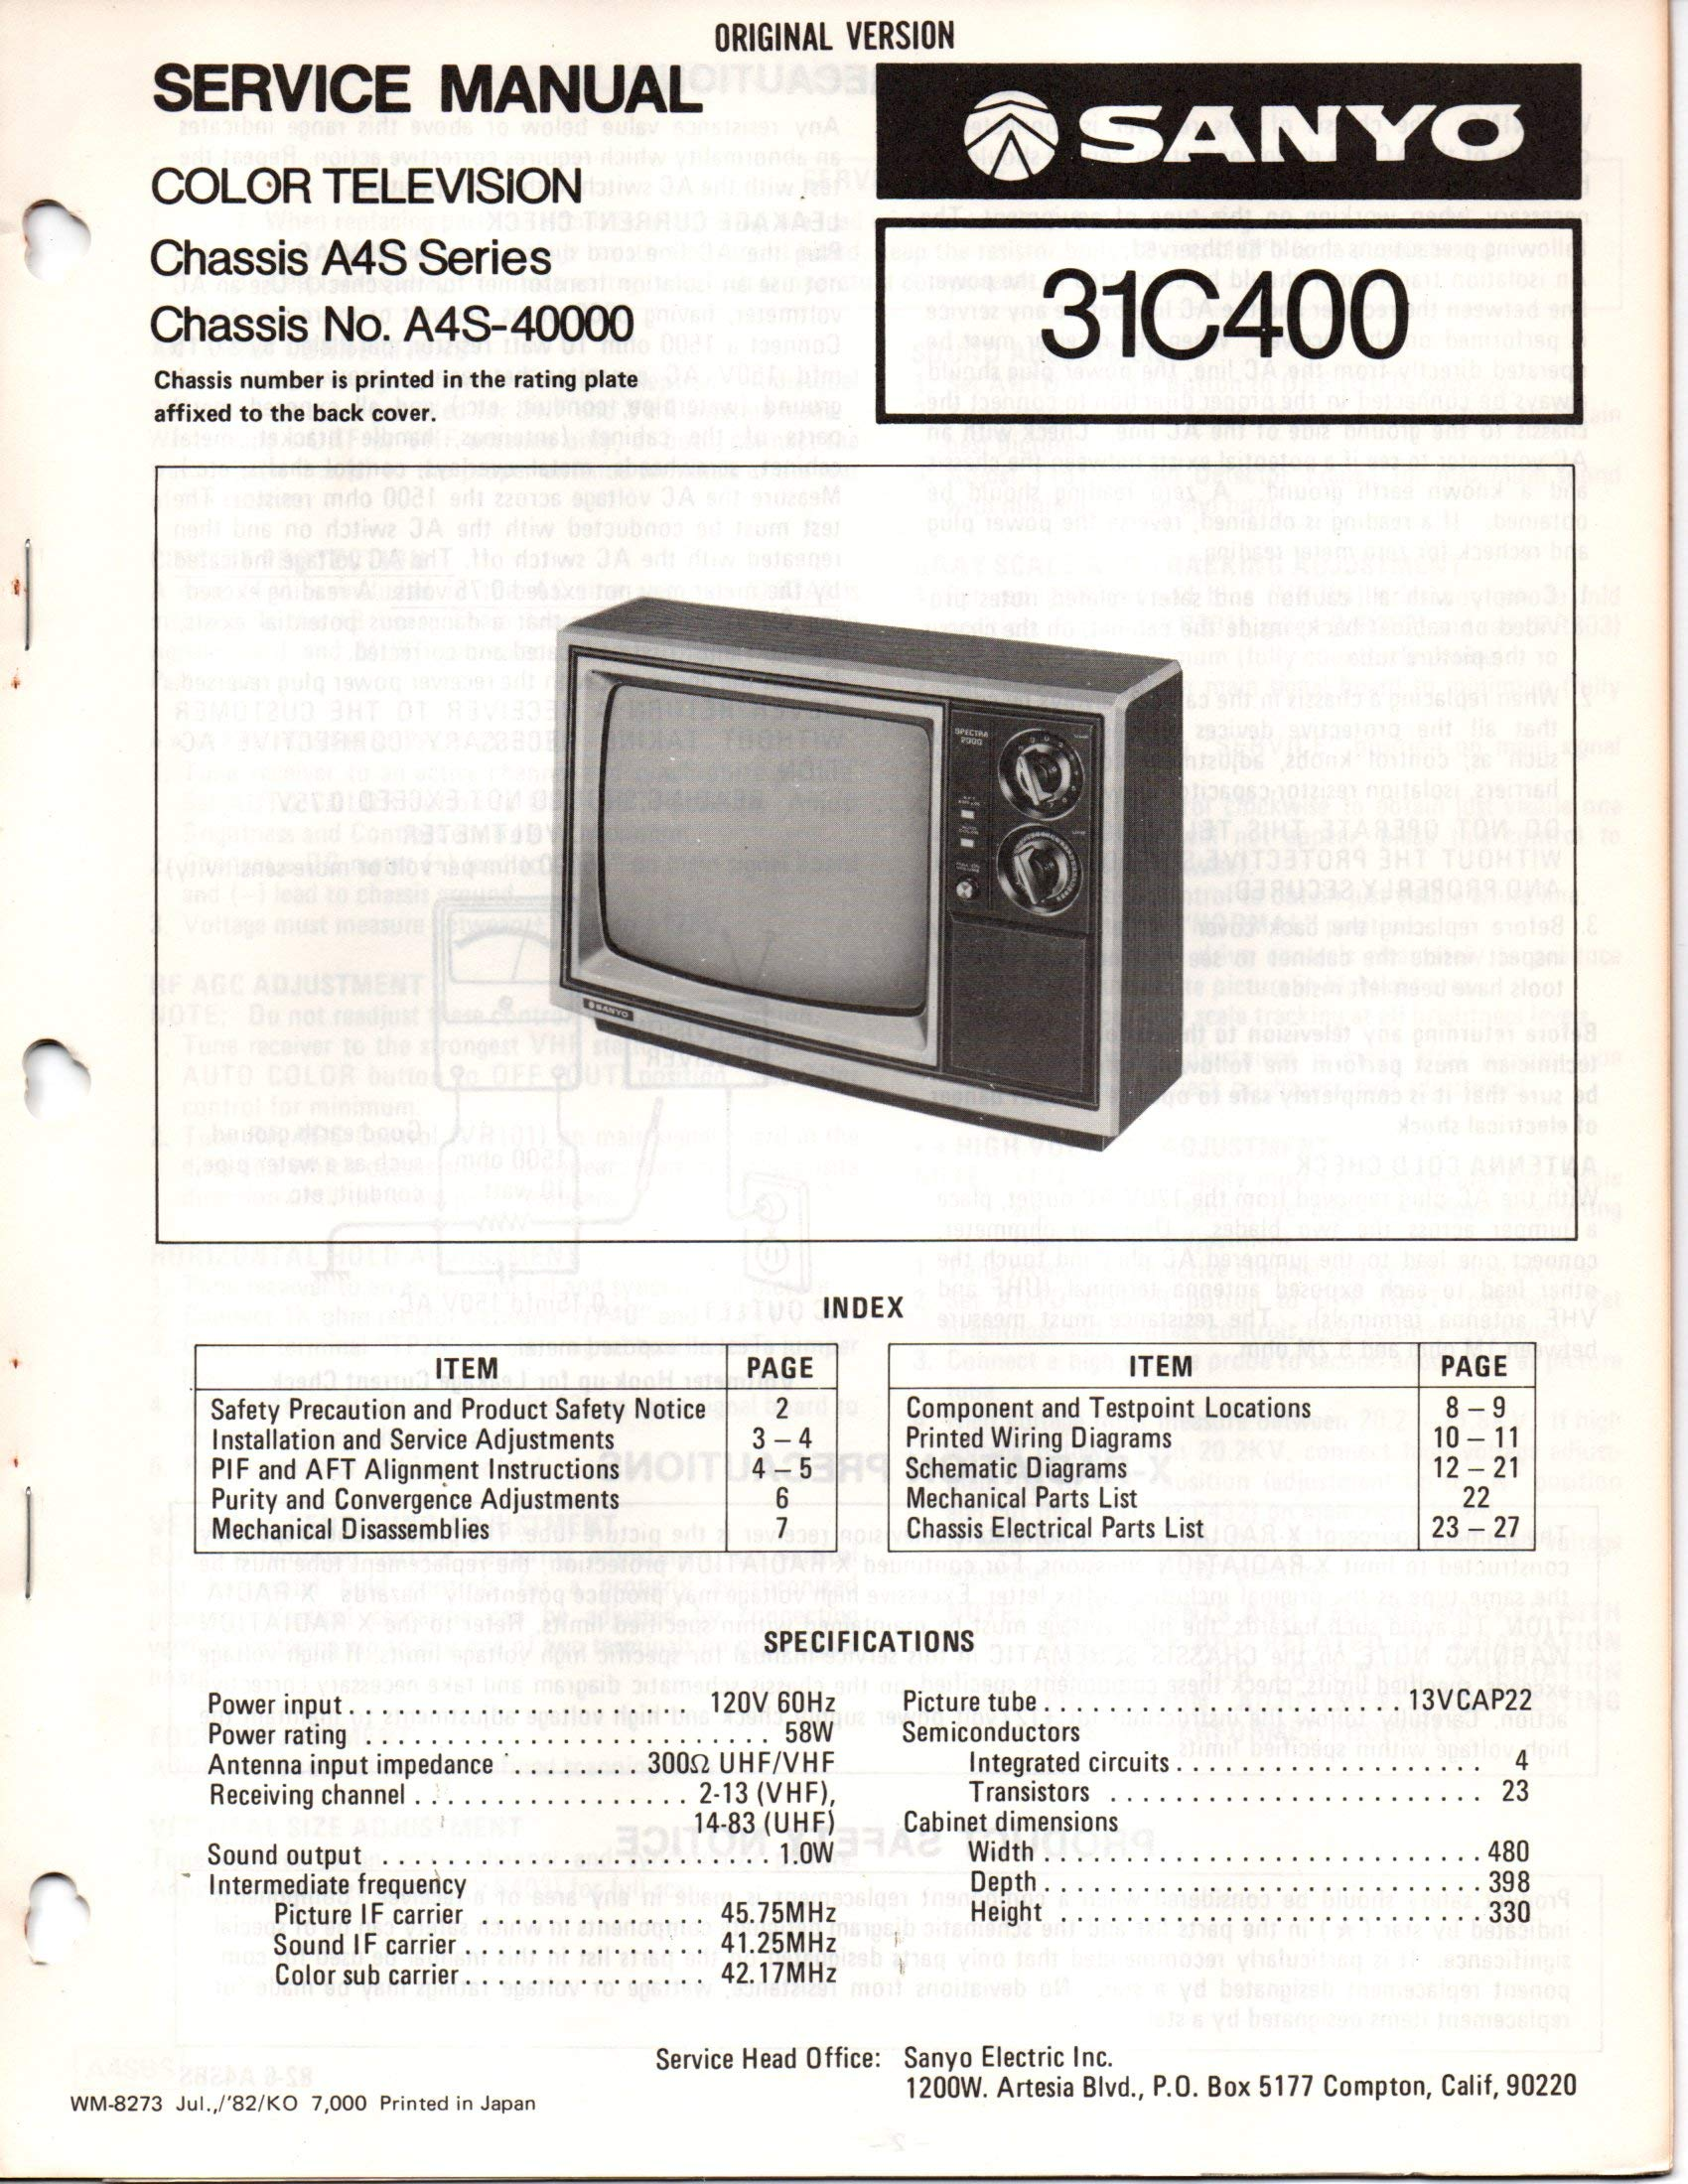 service manual for sanyo 31c400 color television tv, chassis a4s ... sanyo microwave wiring diagram  amazon.com